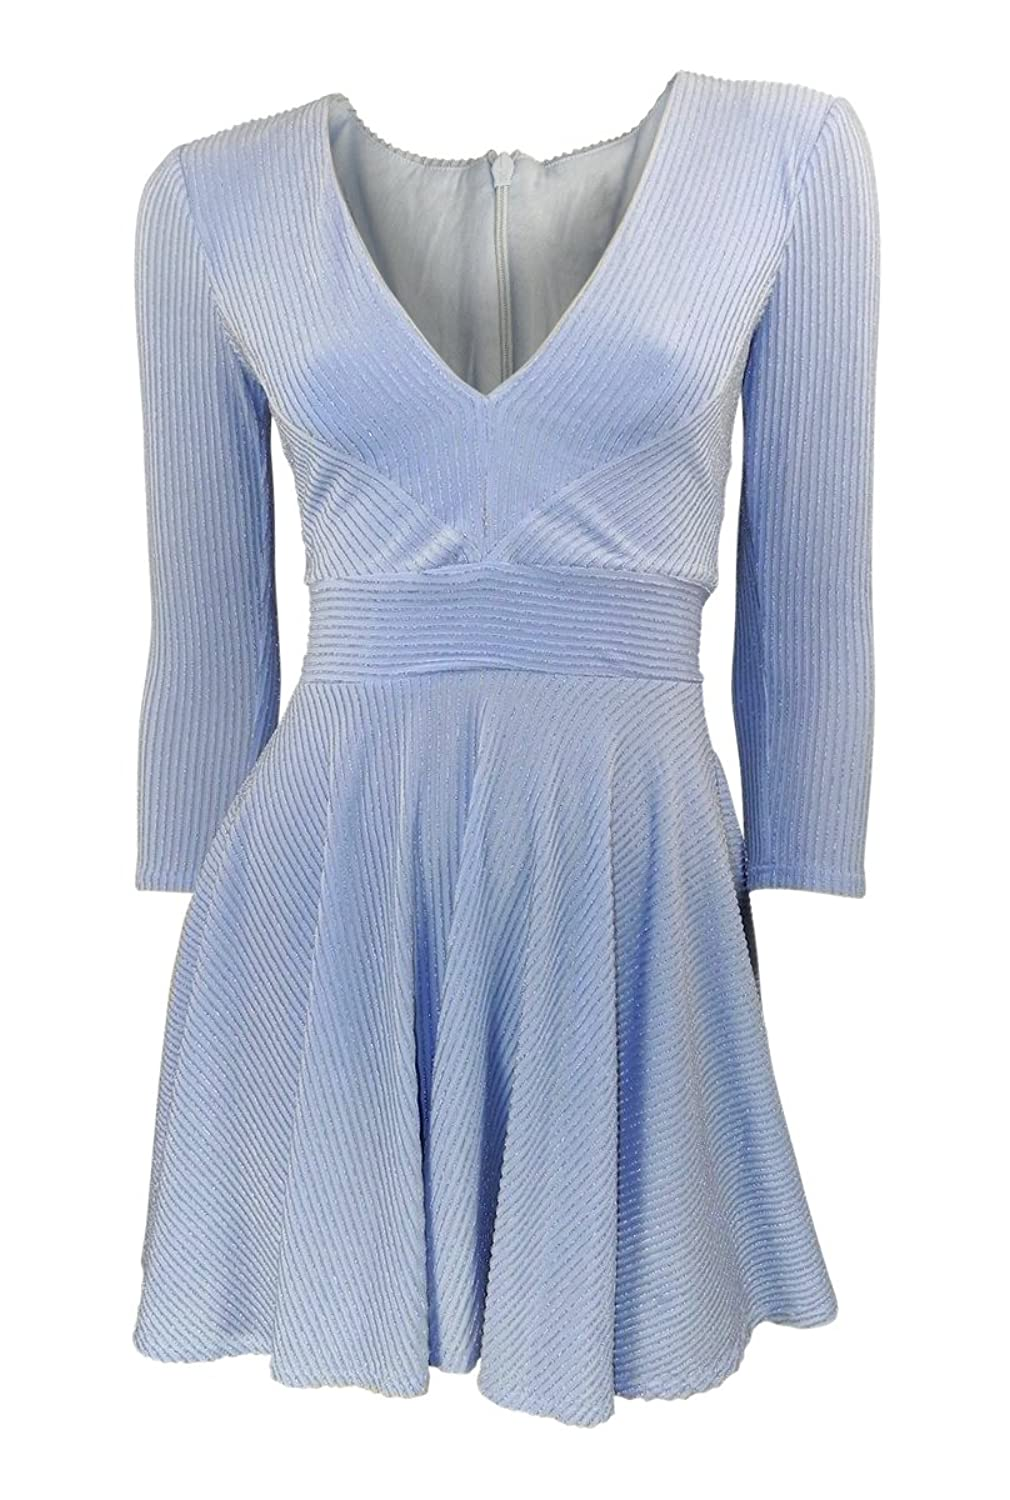 Topshop Pale Blue Fit & Flare Skater Dress with Silver Lurex Stripes ...